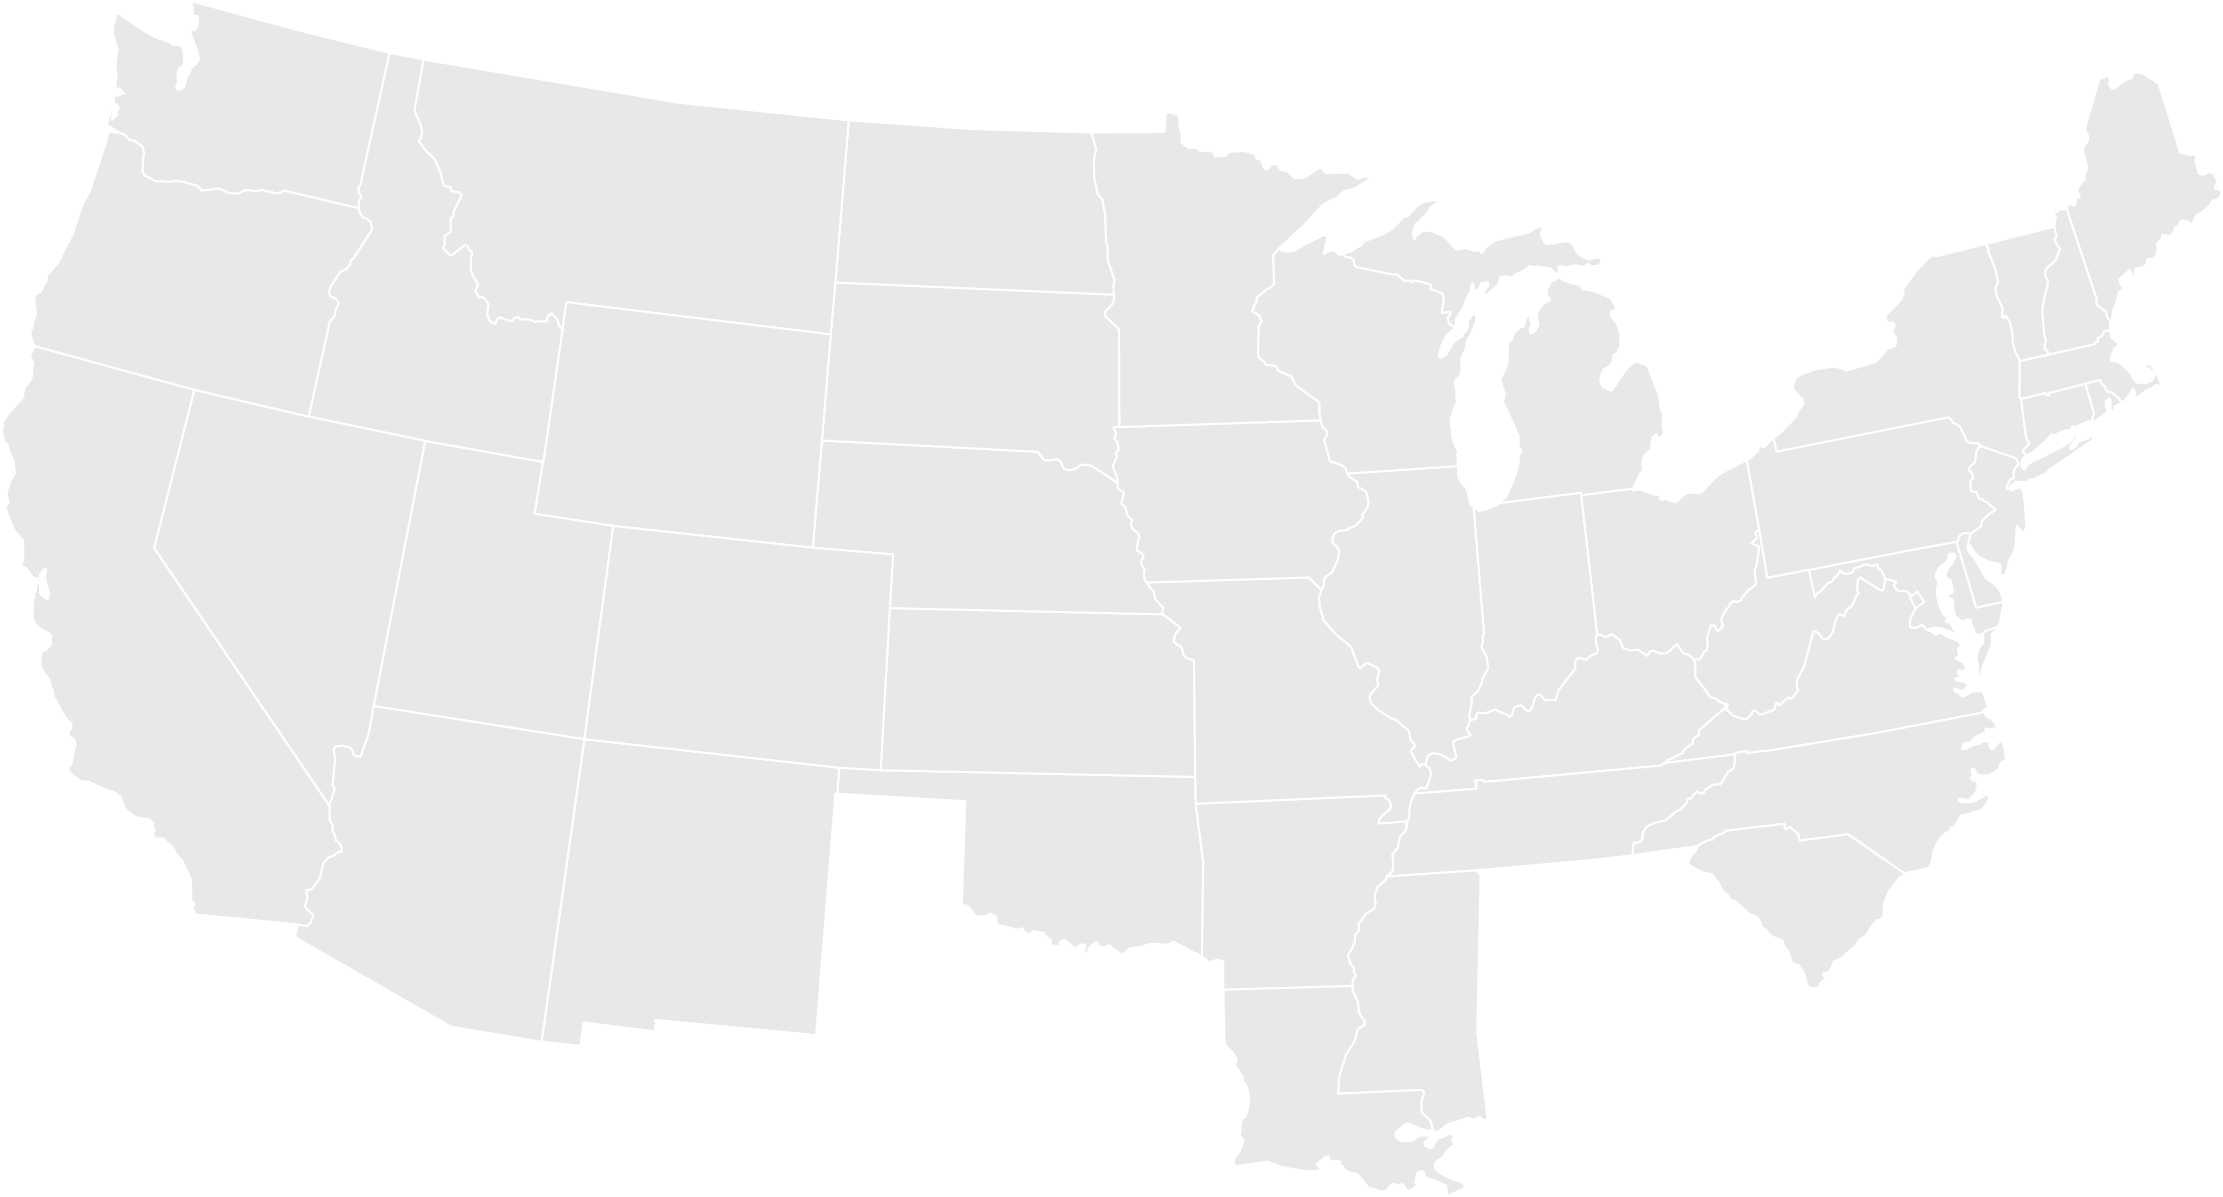 gray map of USA with state boundaries outlined